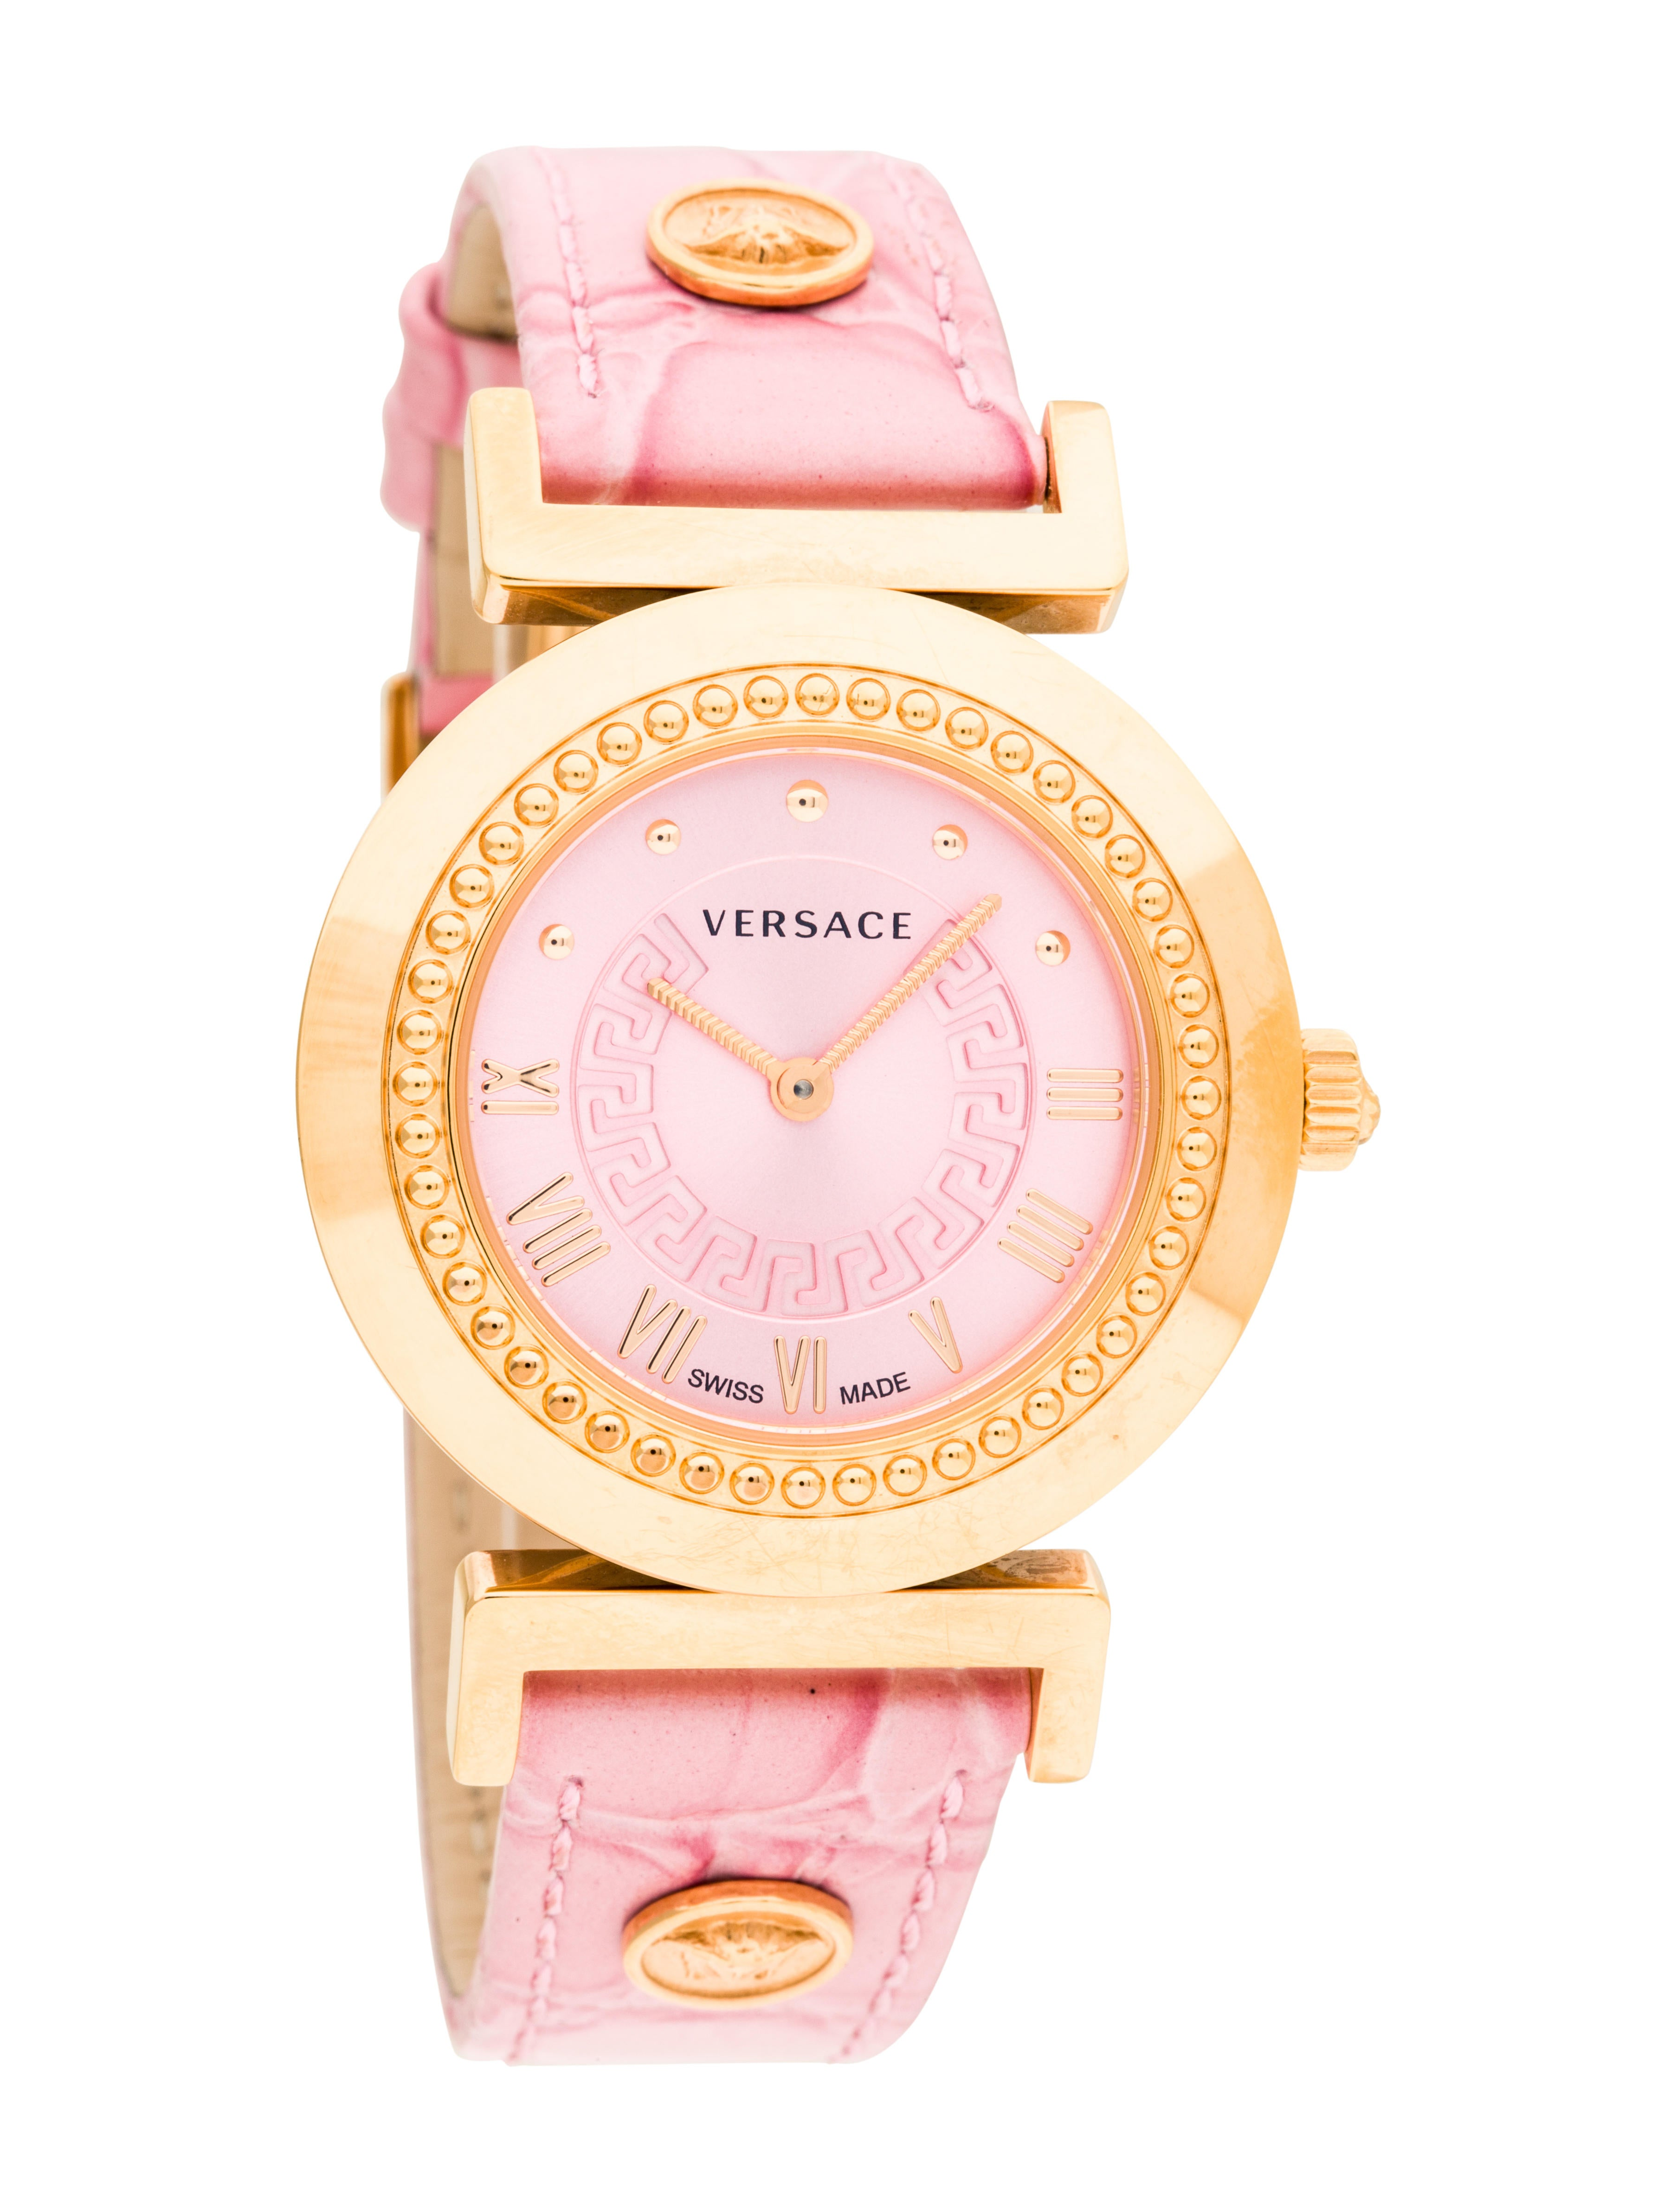 Versace Vanity Watch Strap VES28800 The RealReal : VES288001enlarged from www.therealreal.com size 3614 x 4768 jpeg 700kB